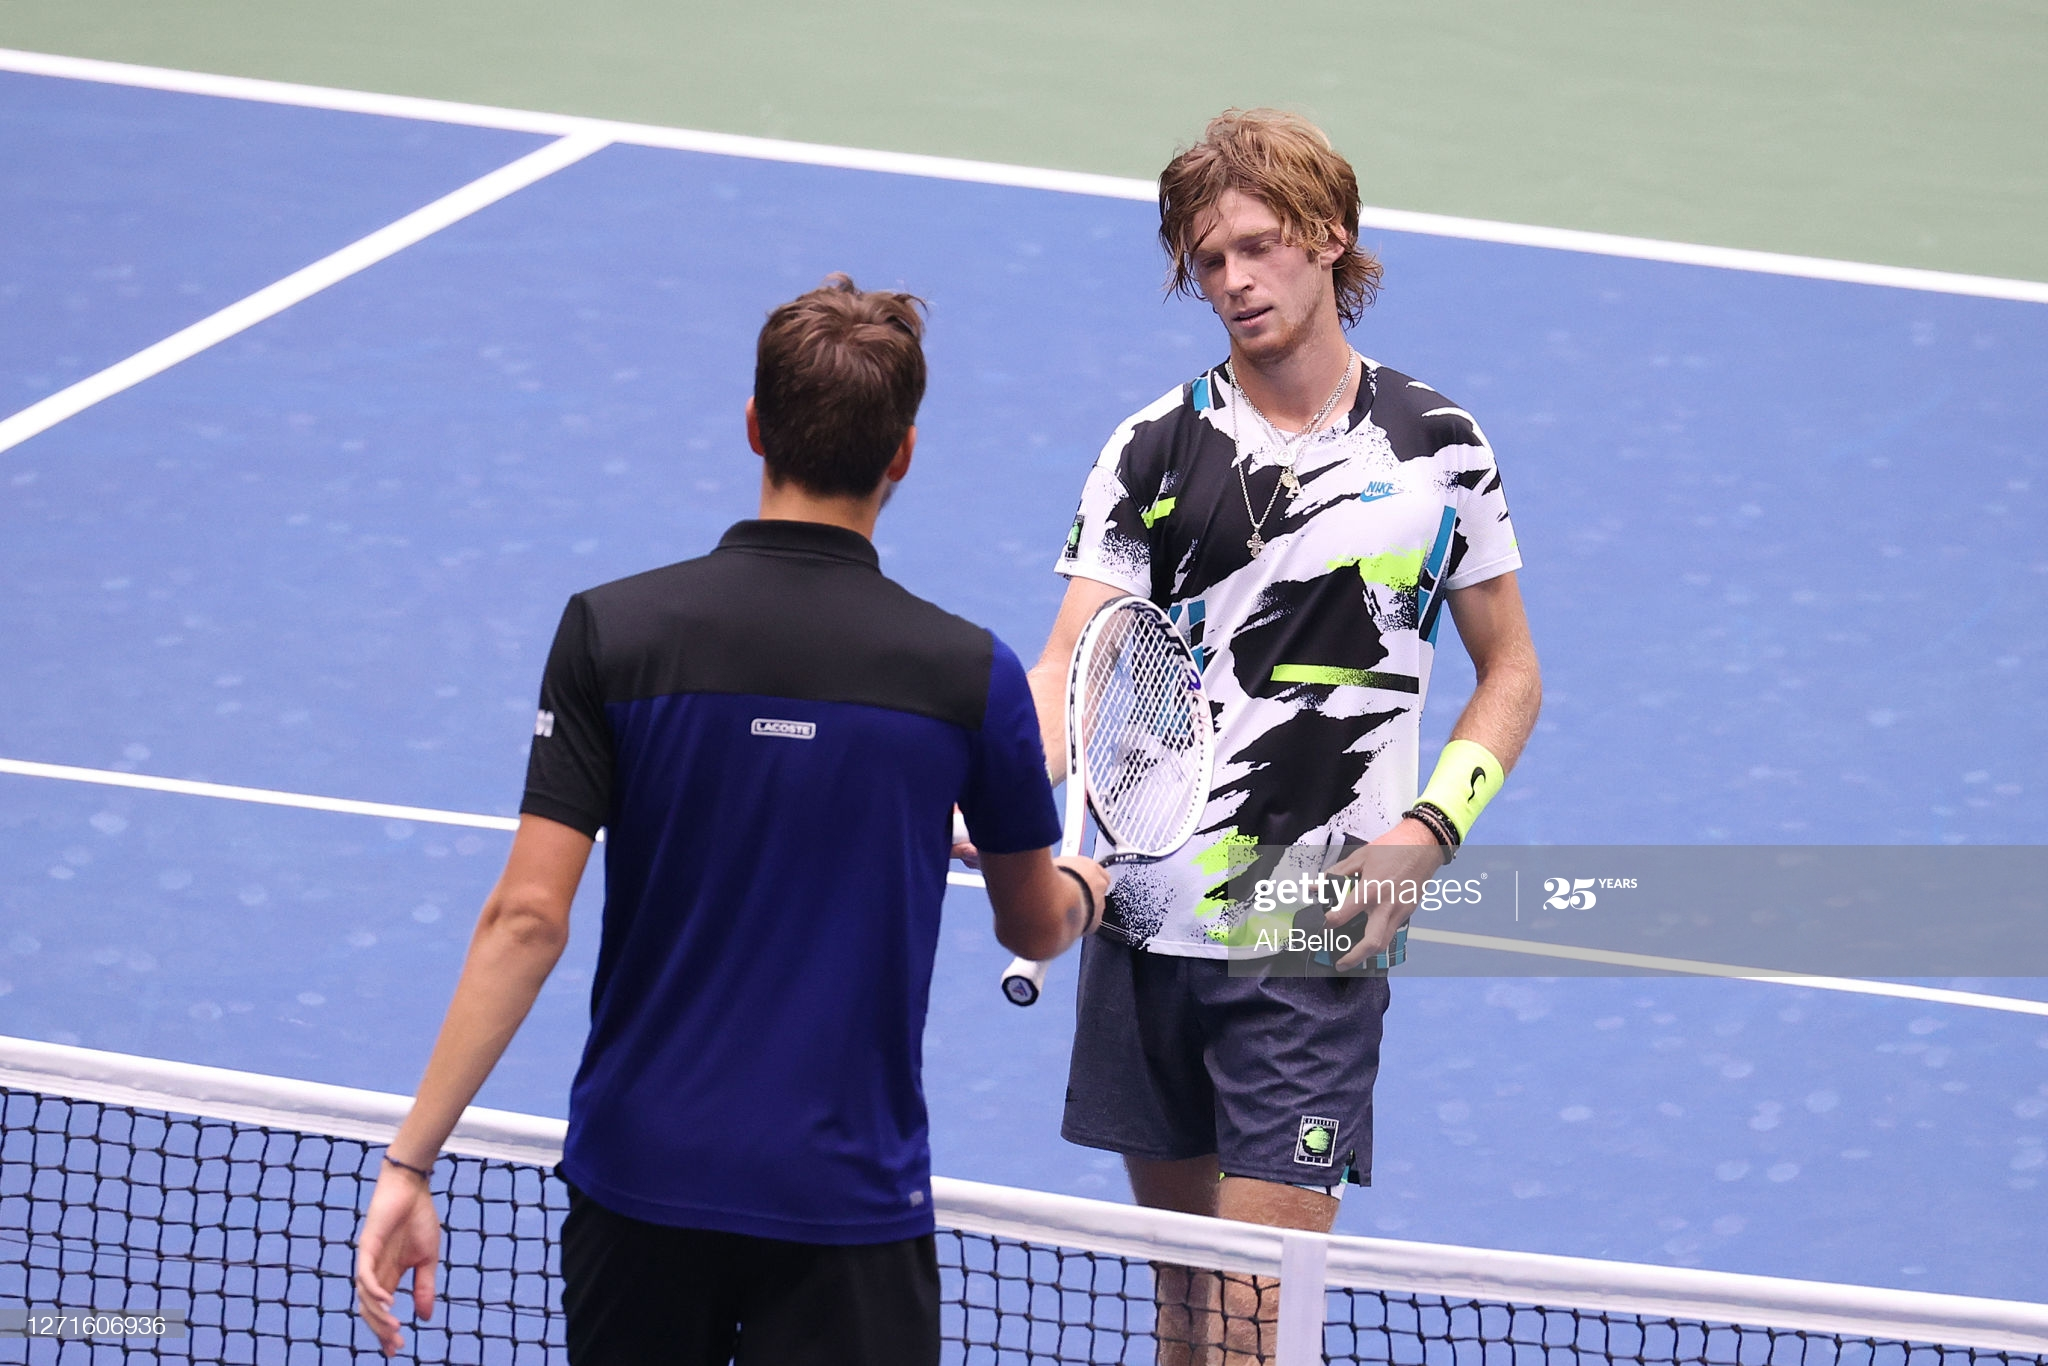 medvedev v rublev us open day 10 2020